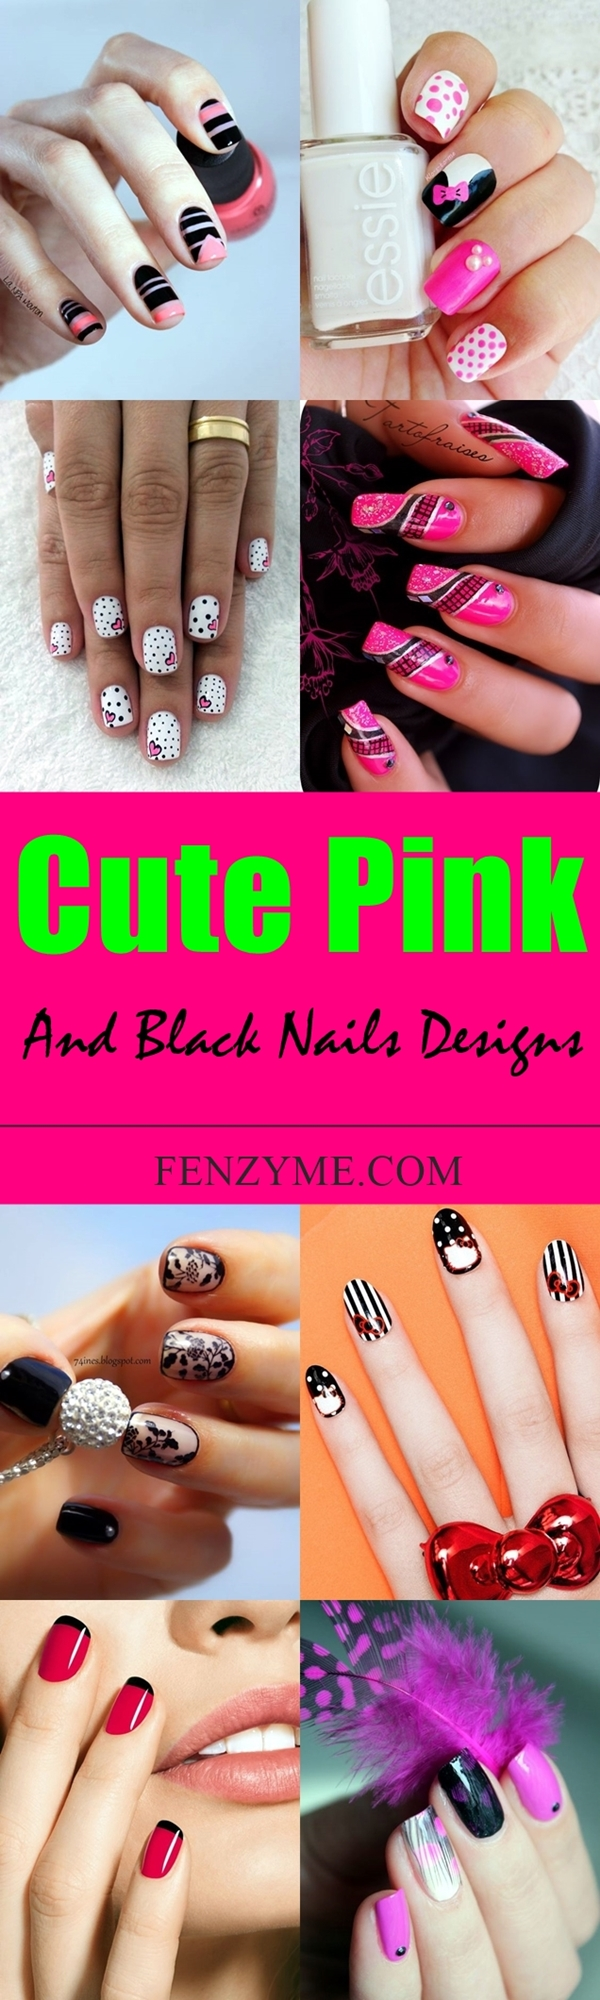 cute-pink-and-black-nails-designs-1-tile